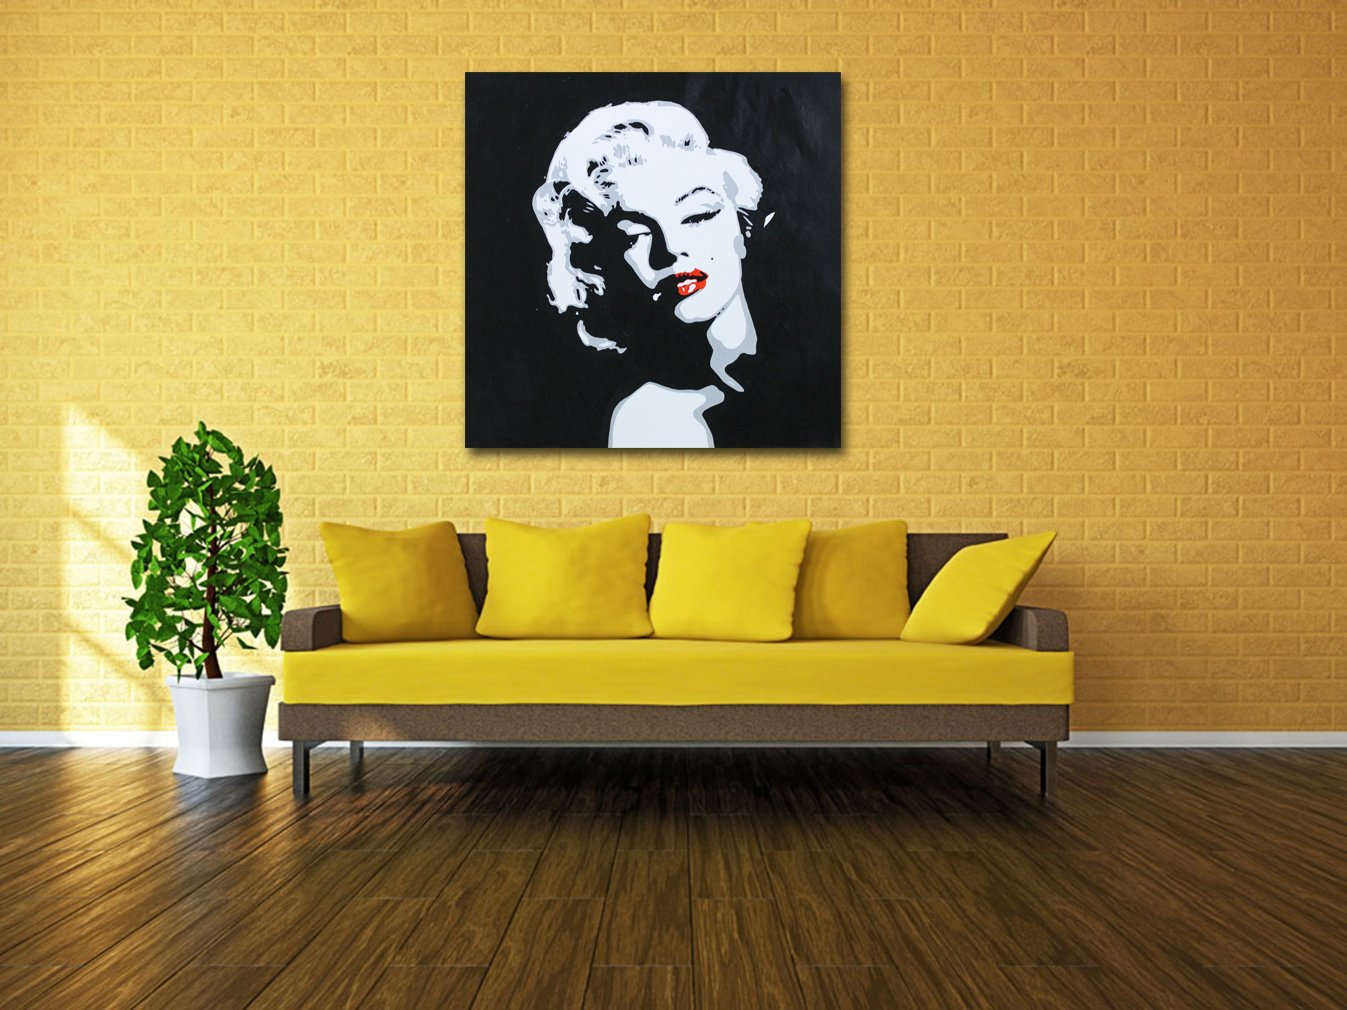 Amazon.com: Muzagroo Art Oil Painting Hand Painted on Canvas Marilyn ...